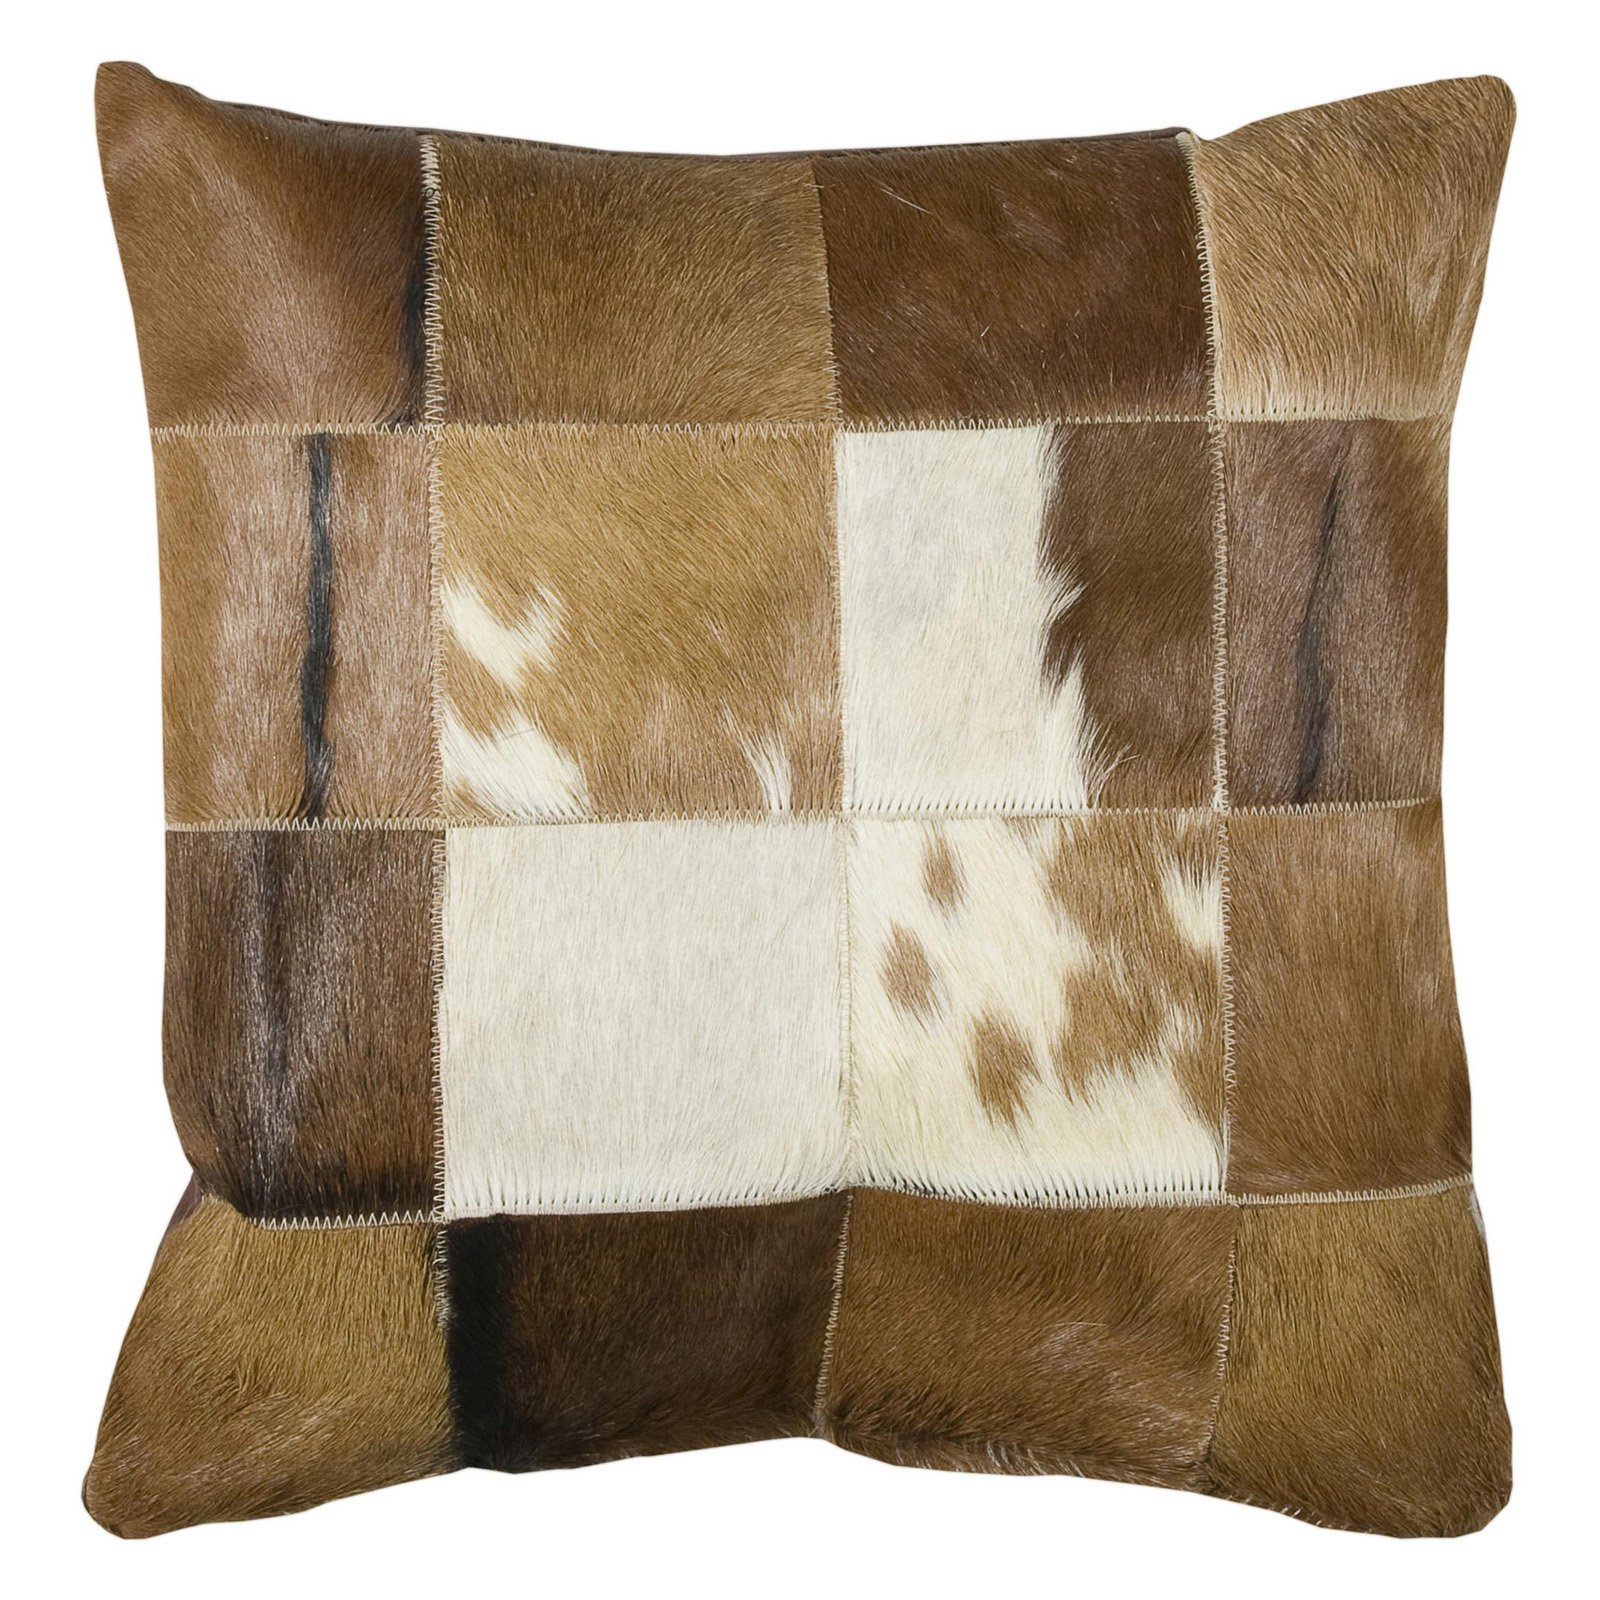 "Rizzy Home hair on hide squares18"" x 18""Leather / Cotton decorative filled pillow"